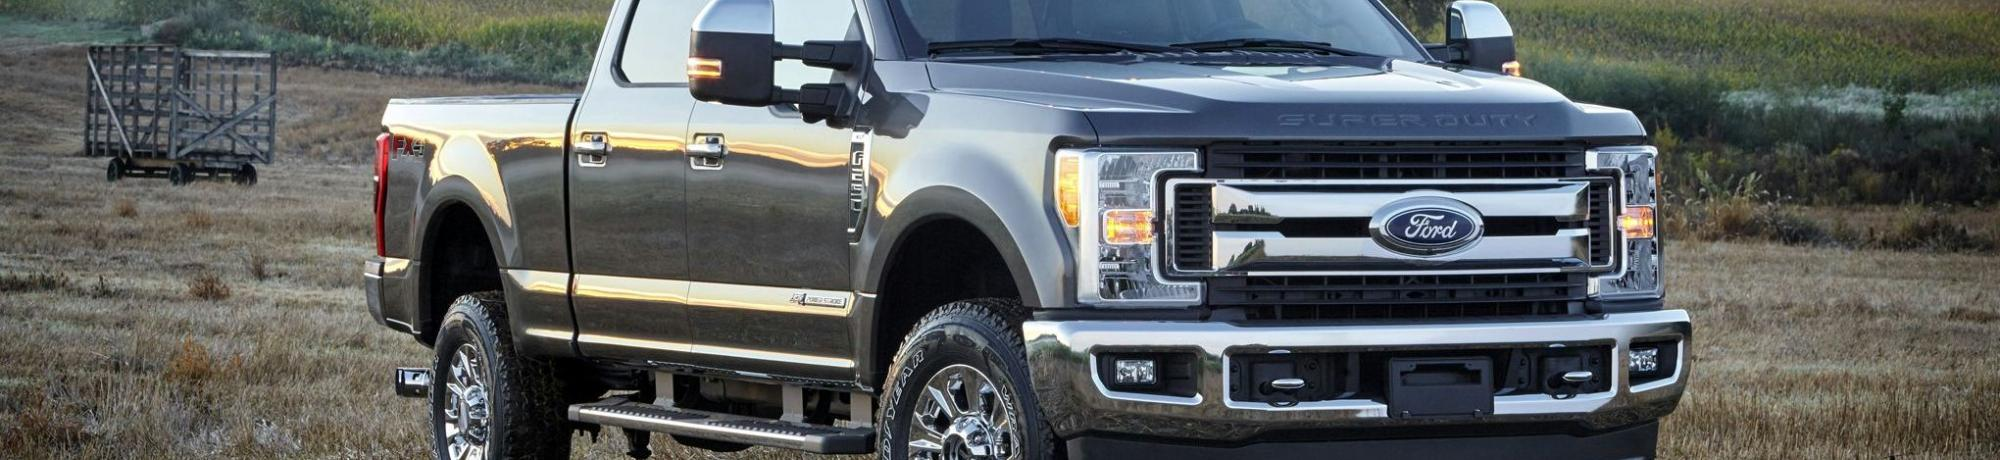 2017-ford-f-250-xlt-super-duty-front-three-quarter-03.jpg